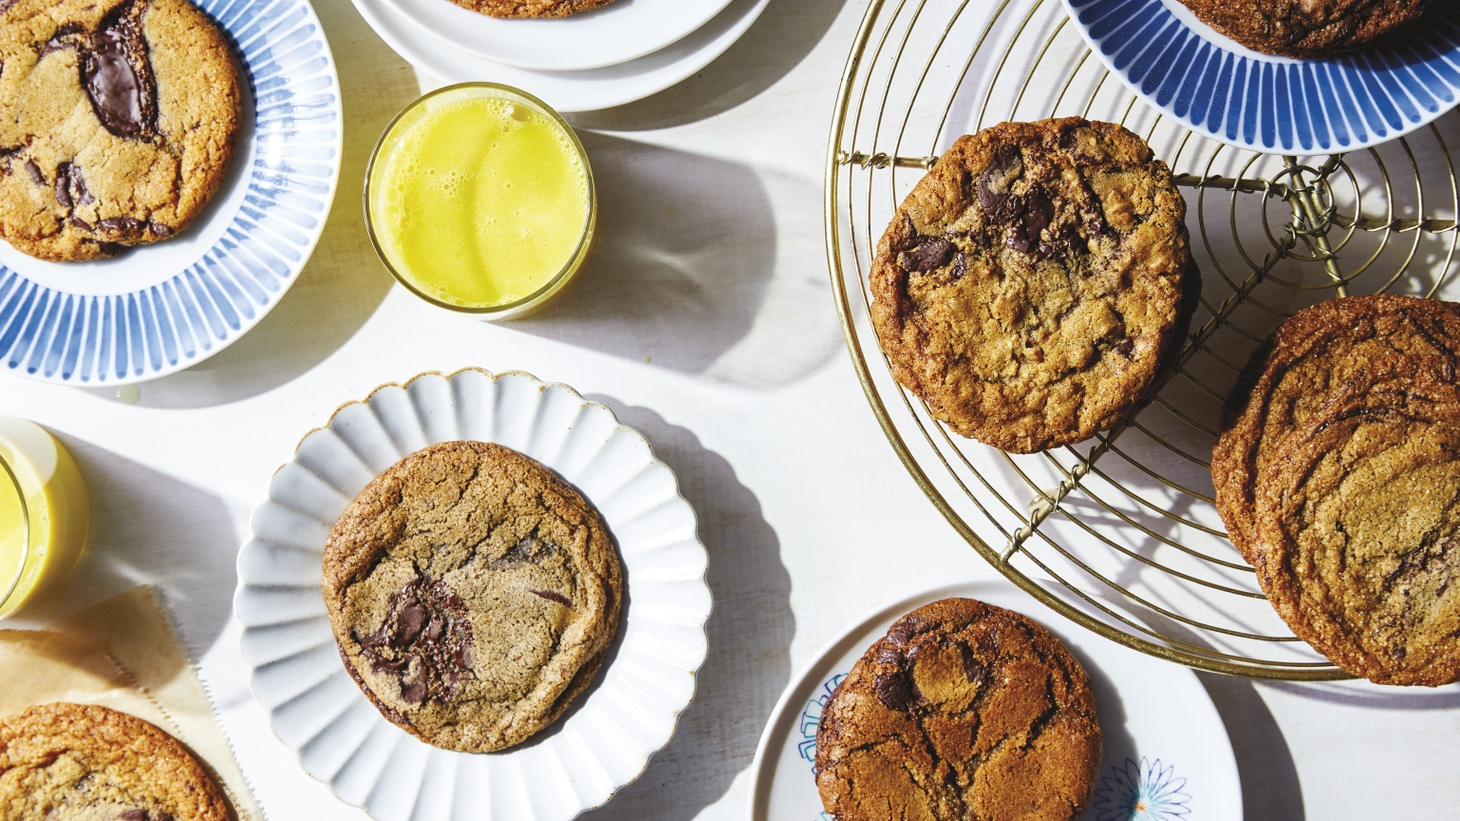 Aiming for an adult chocolate chip cookie? Use buckwheat flour, suggests baker Roxana Jullapat, and pair it with a strong, black cup of coffee.